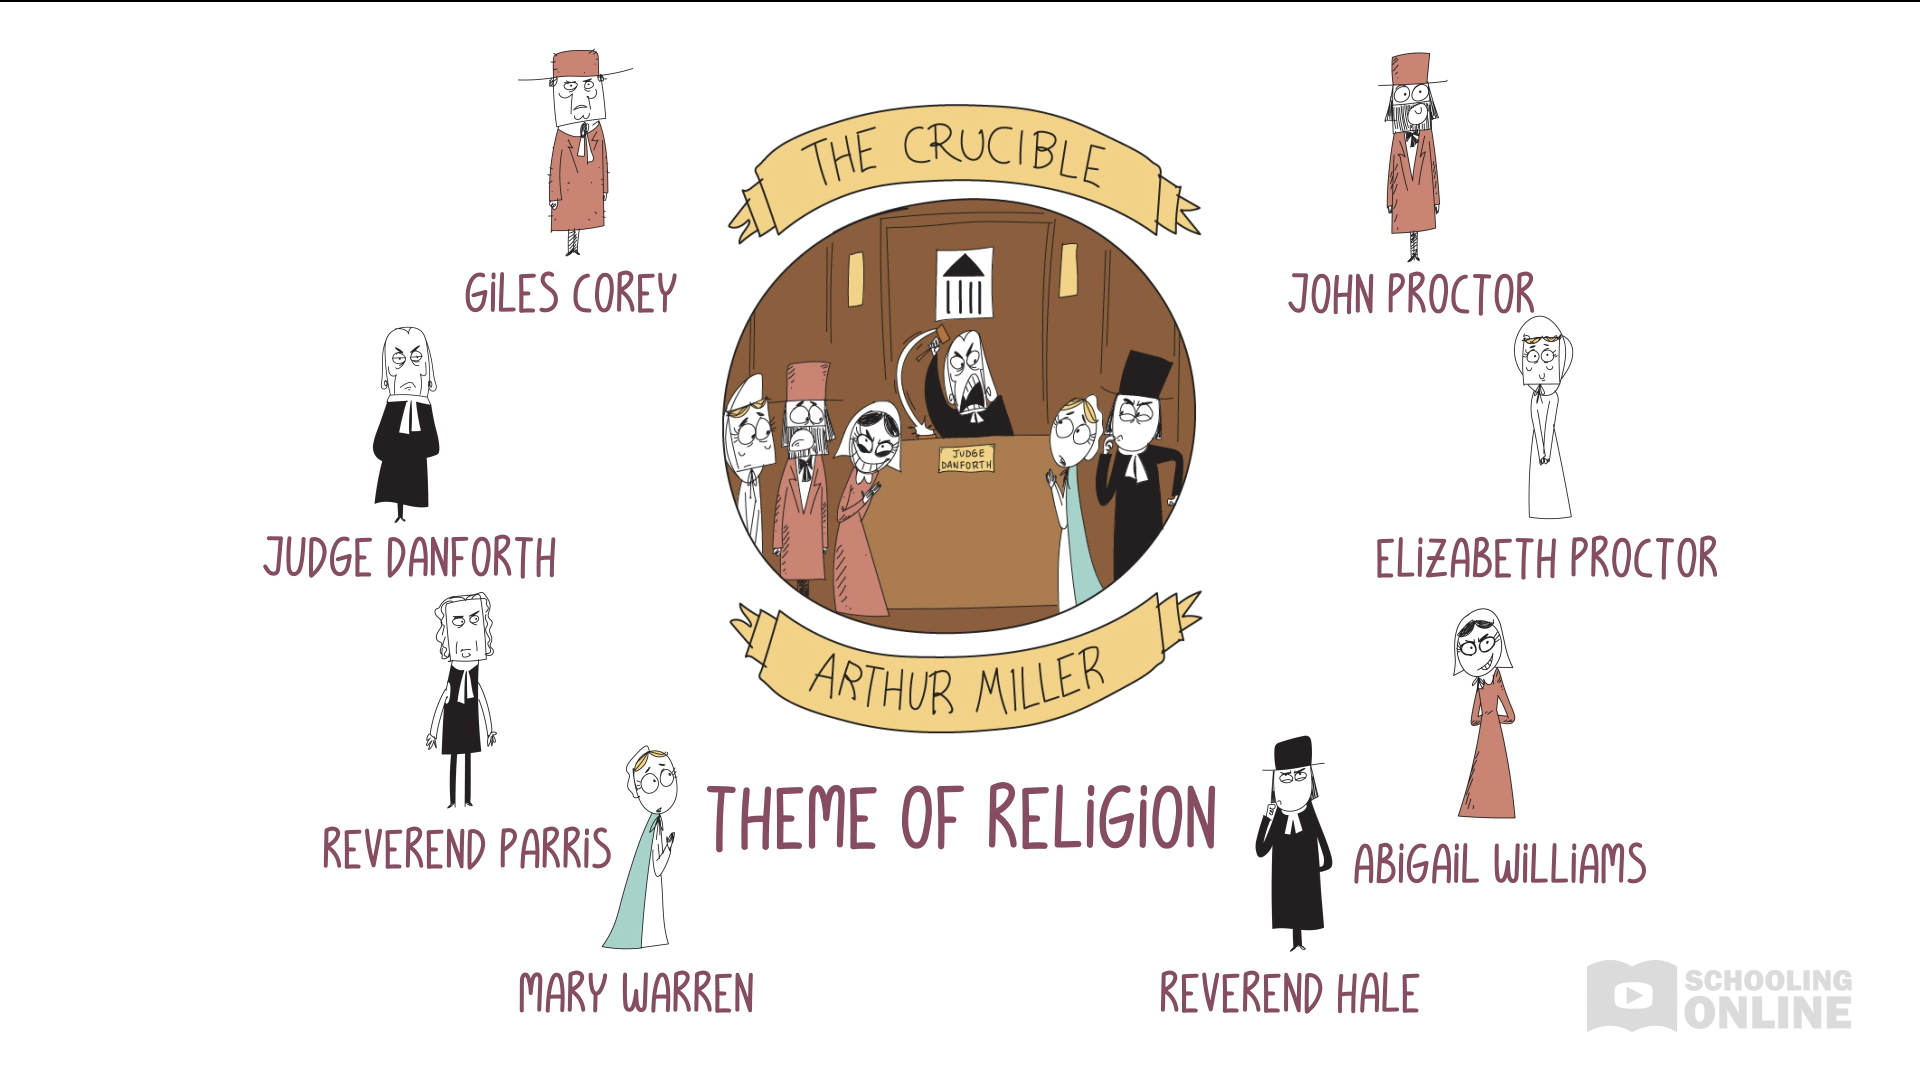 The Crucible - Arthur Miller - Theme of Religion - Destroying Drama Series